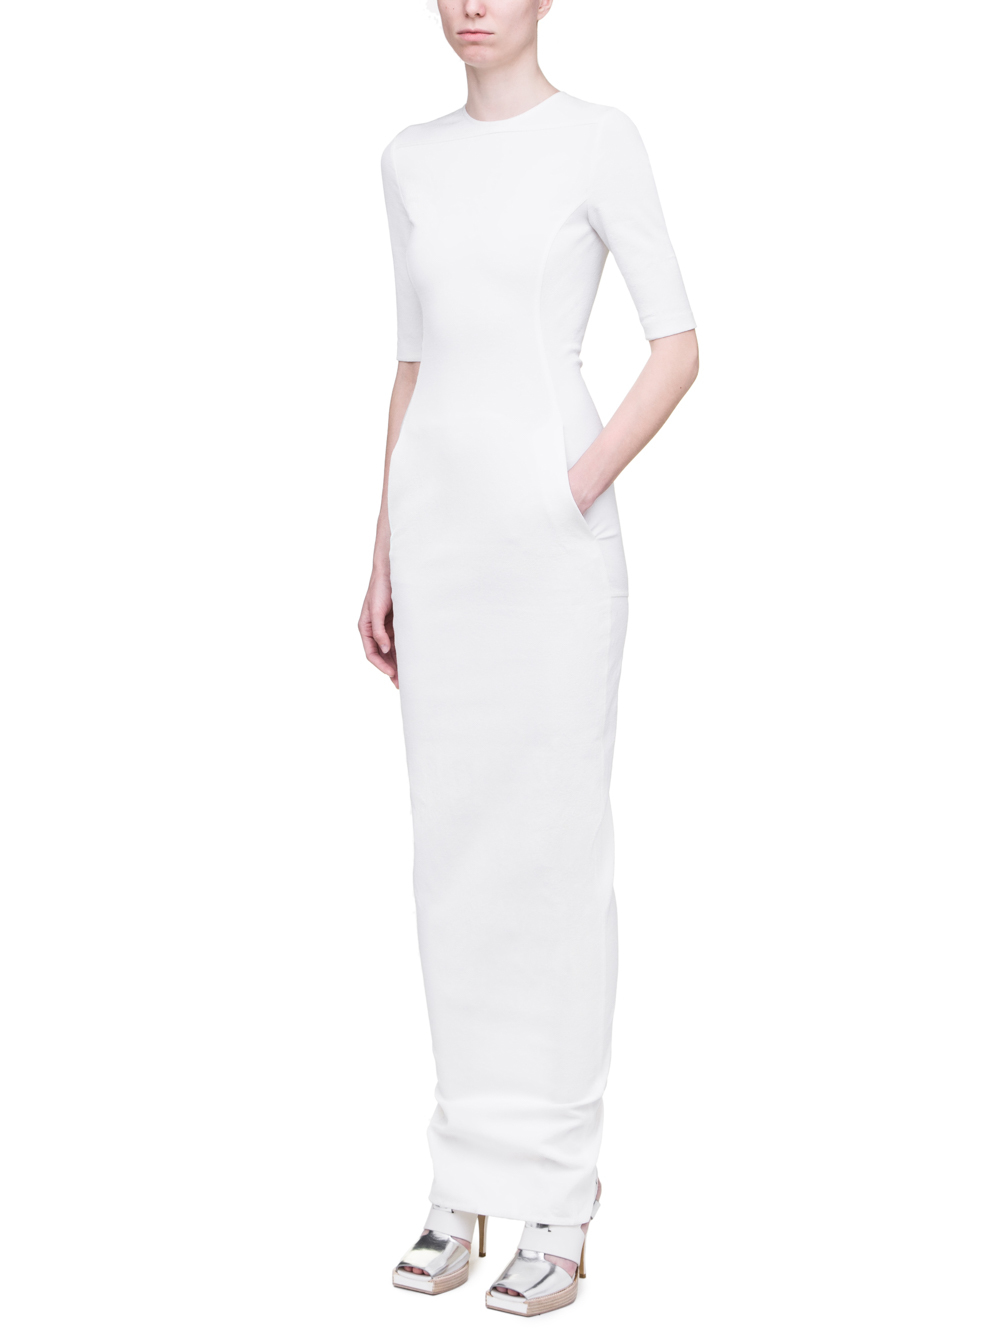 RICK OWENS SS19 BABEL OFFICE GOWN IN MILK WHITE